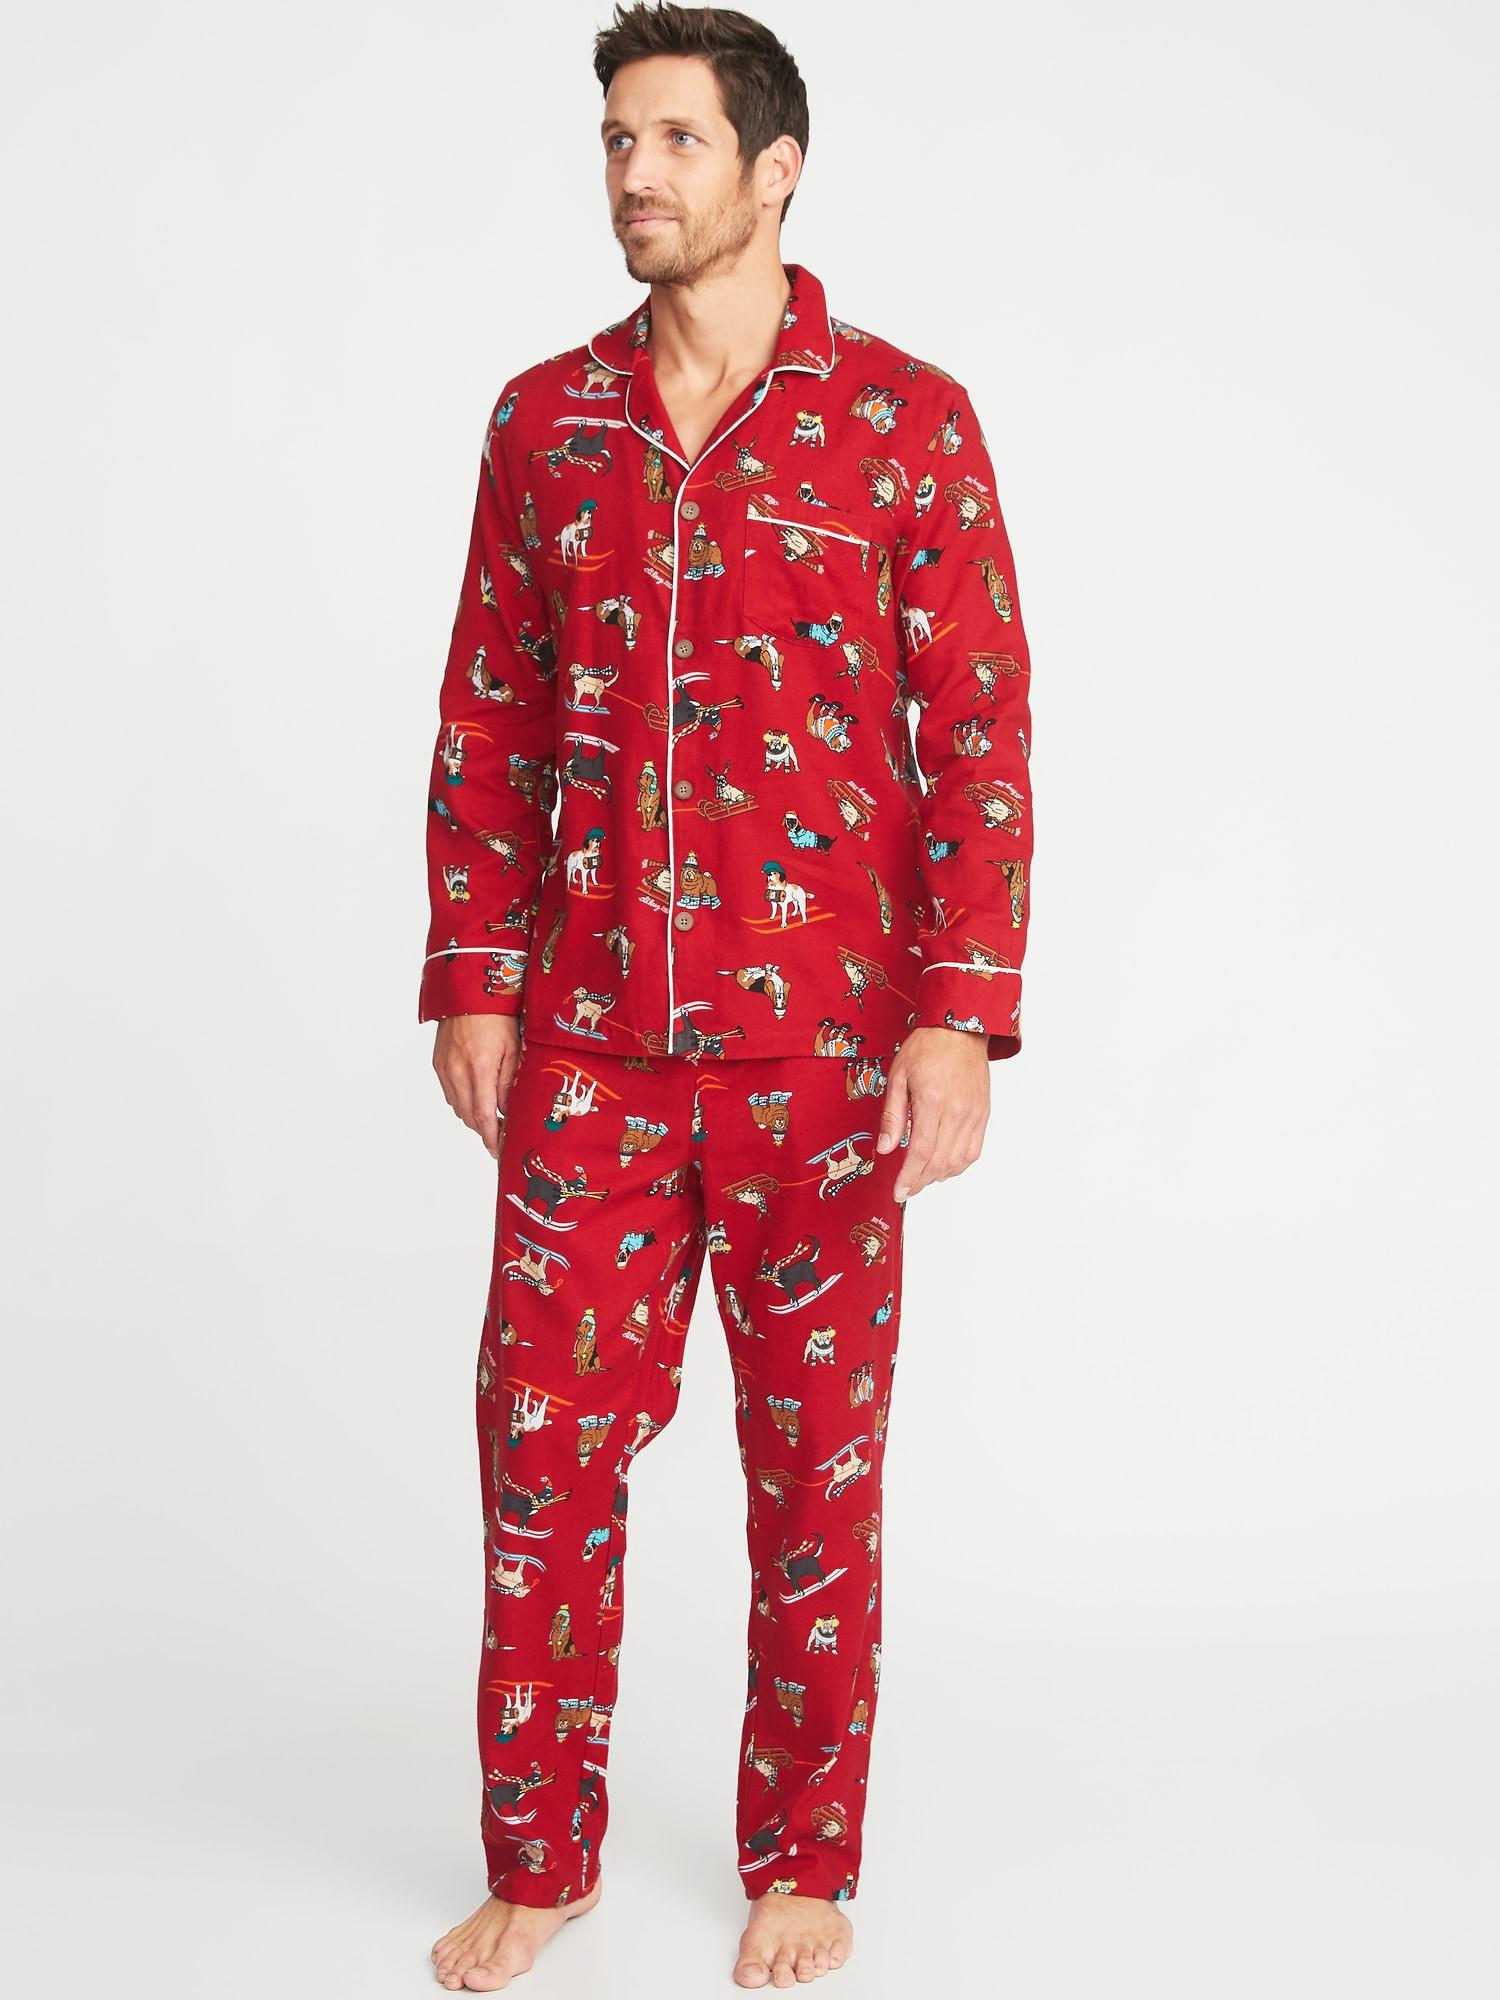 7edb3a76ff Lyst - Old Navy Patterned Flannel Pajama Set in Red for Men - Save 51%